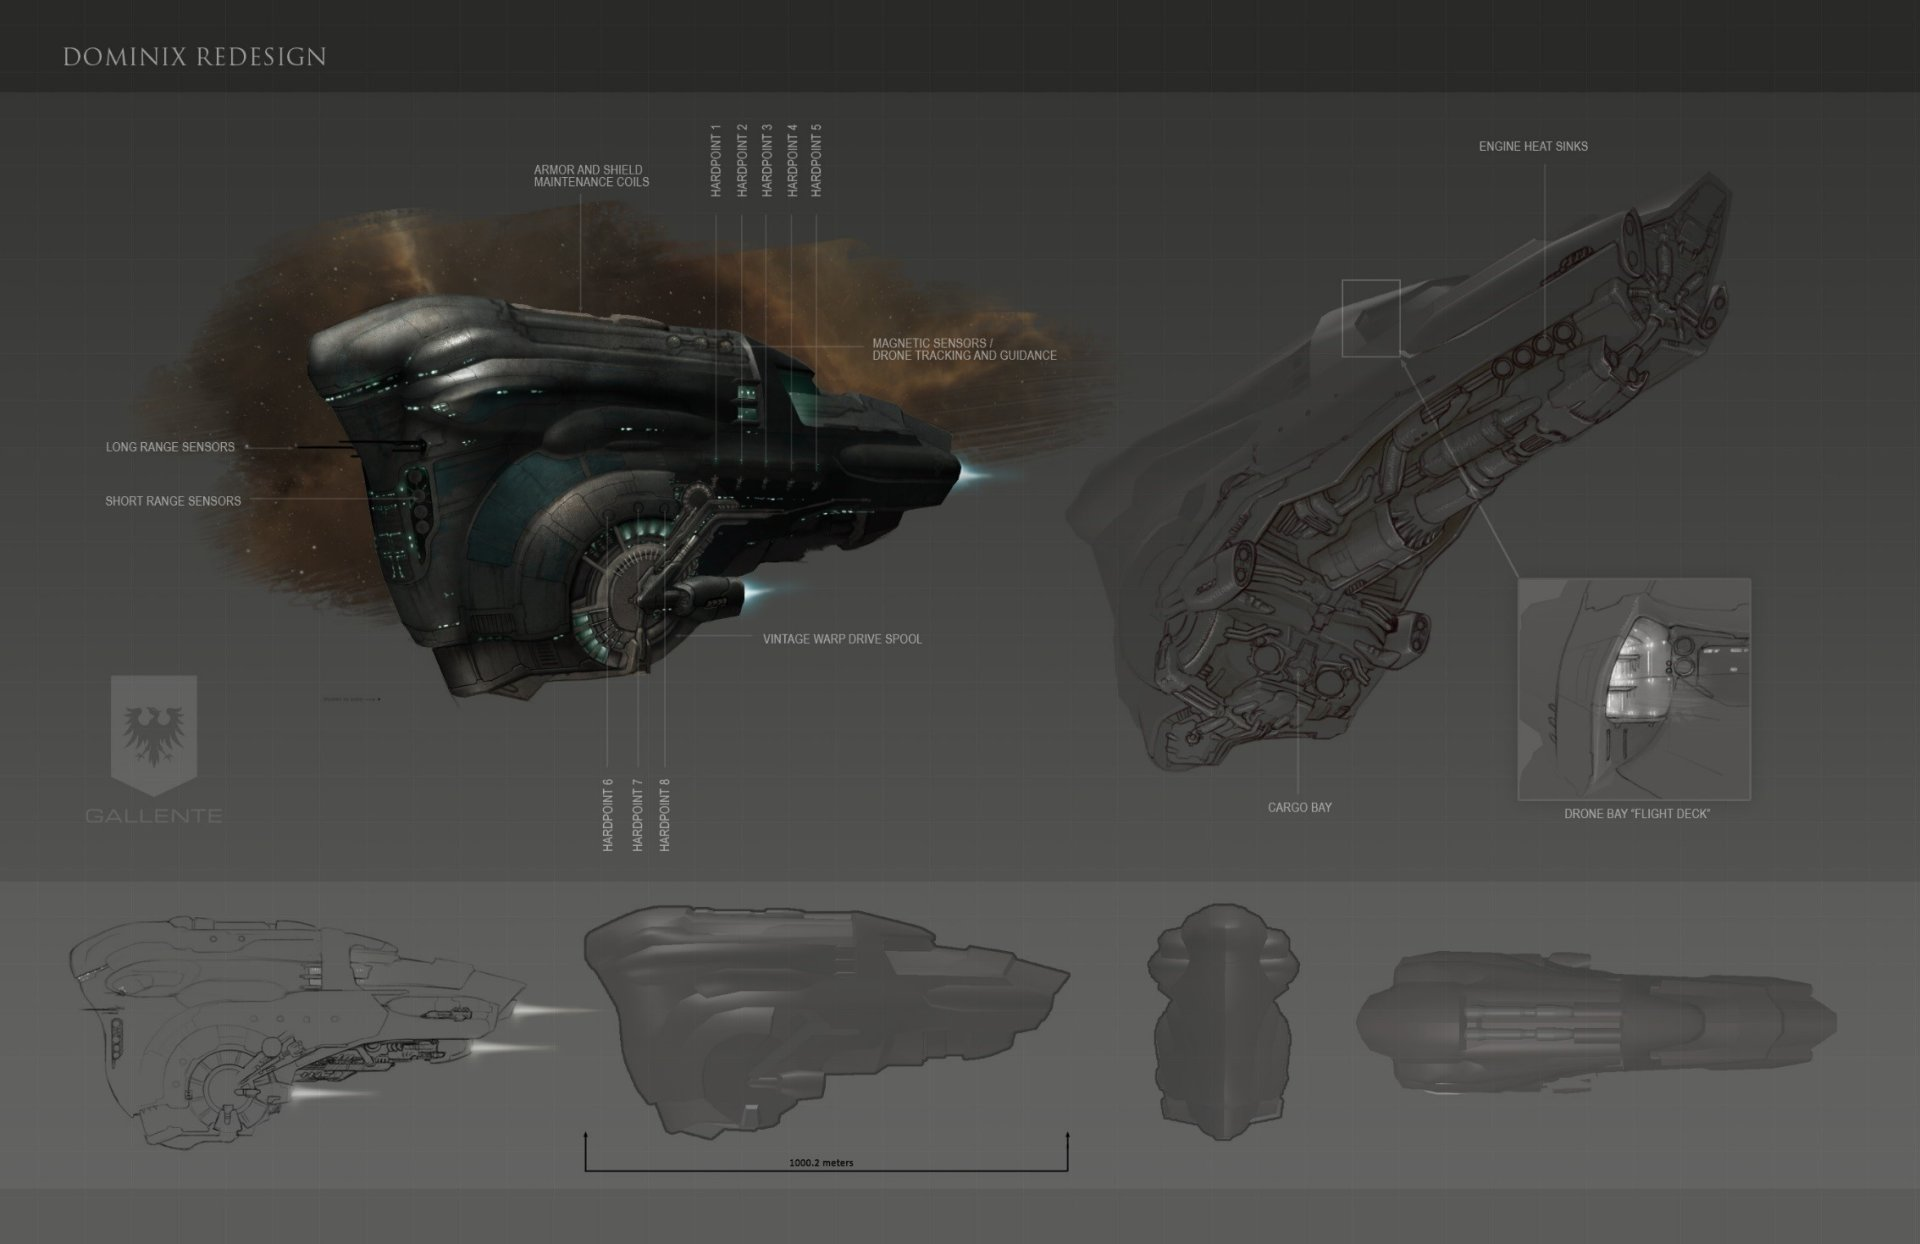 EVE Online: Gallente Dominix redesigned